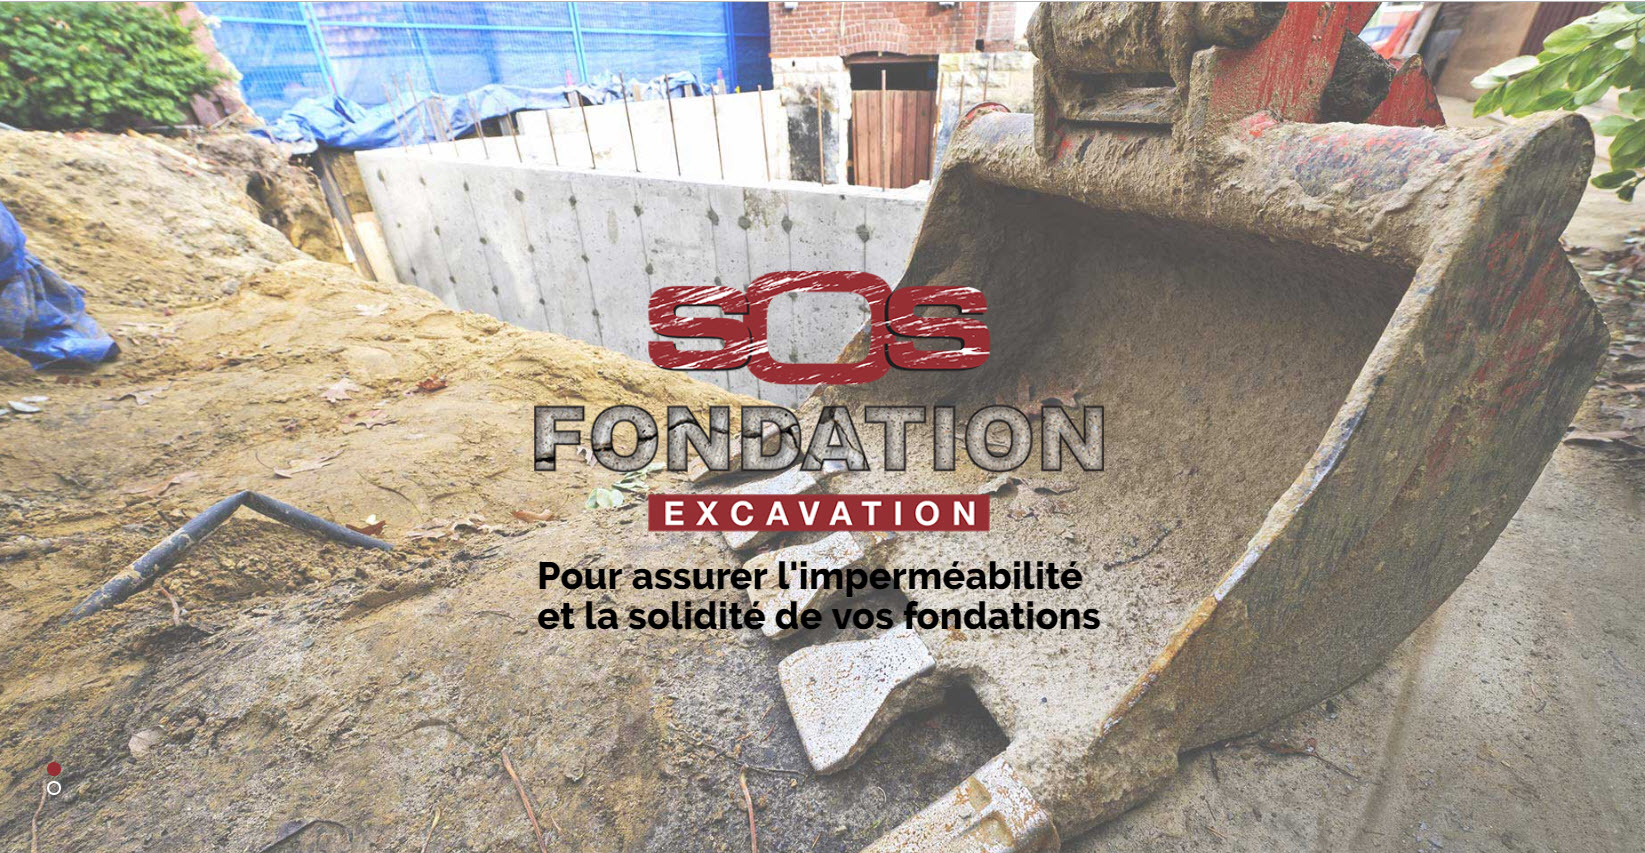 Images SOS Fondation Excavation